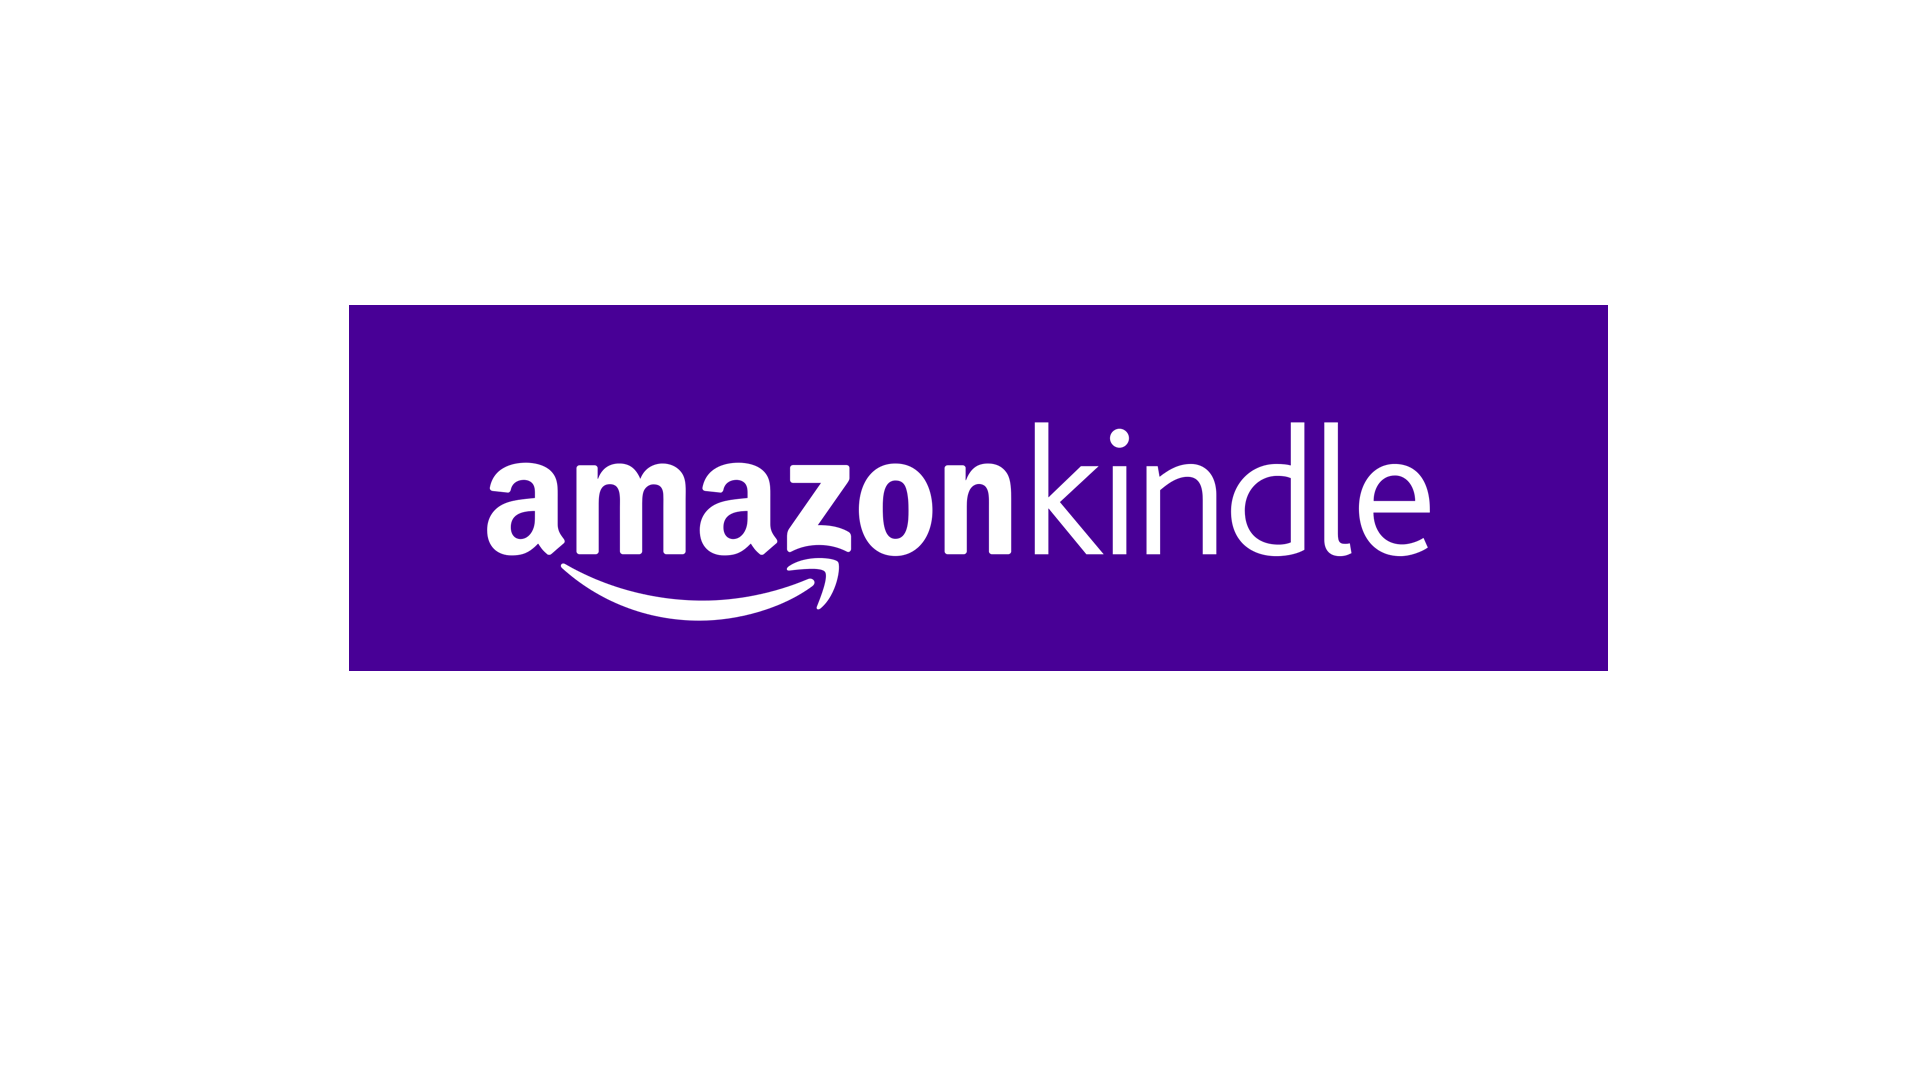 Caleb Kinchlow Parents Kids and Technology Amazon e-book